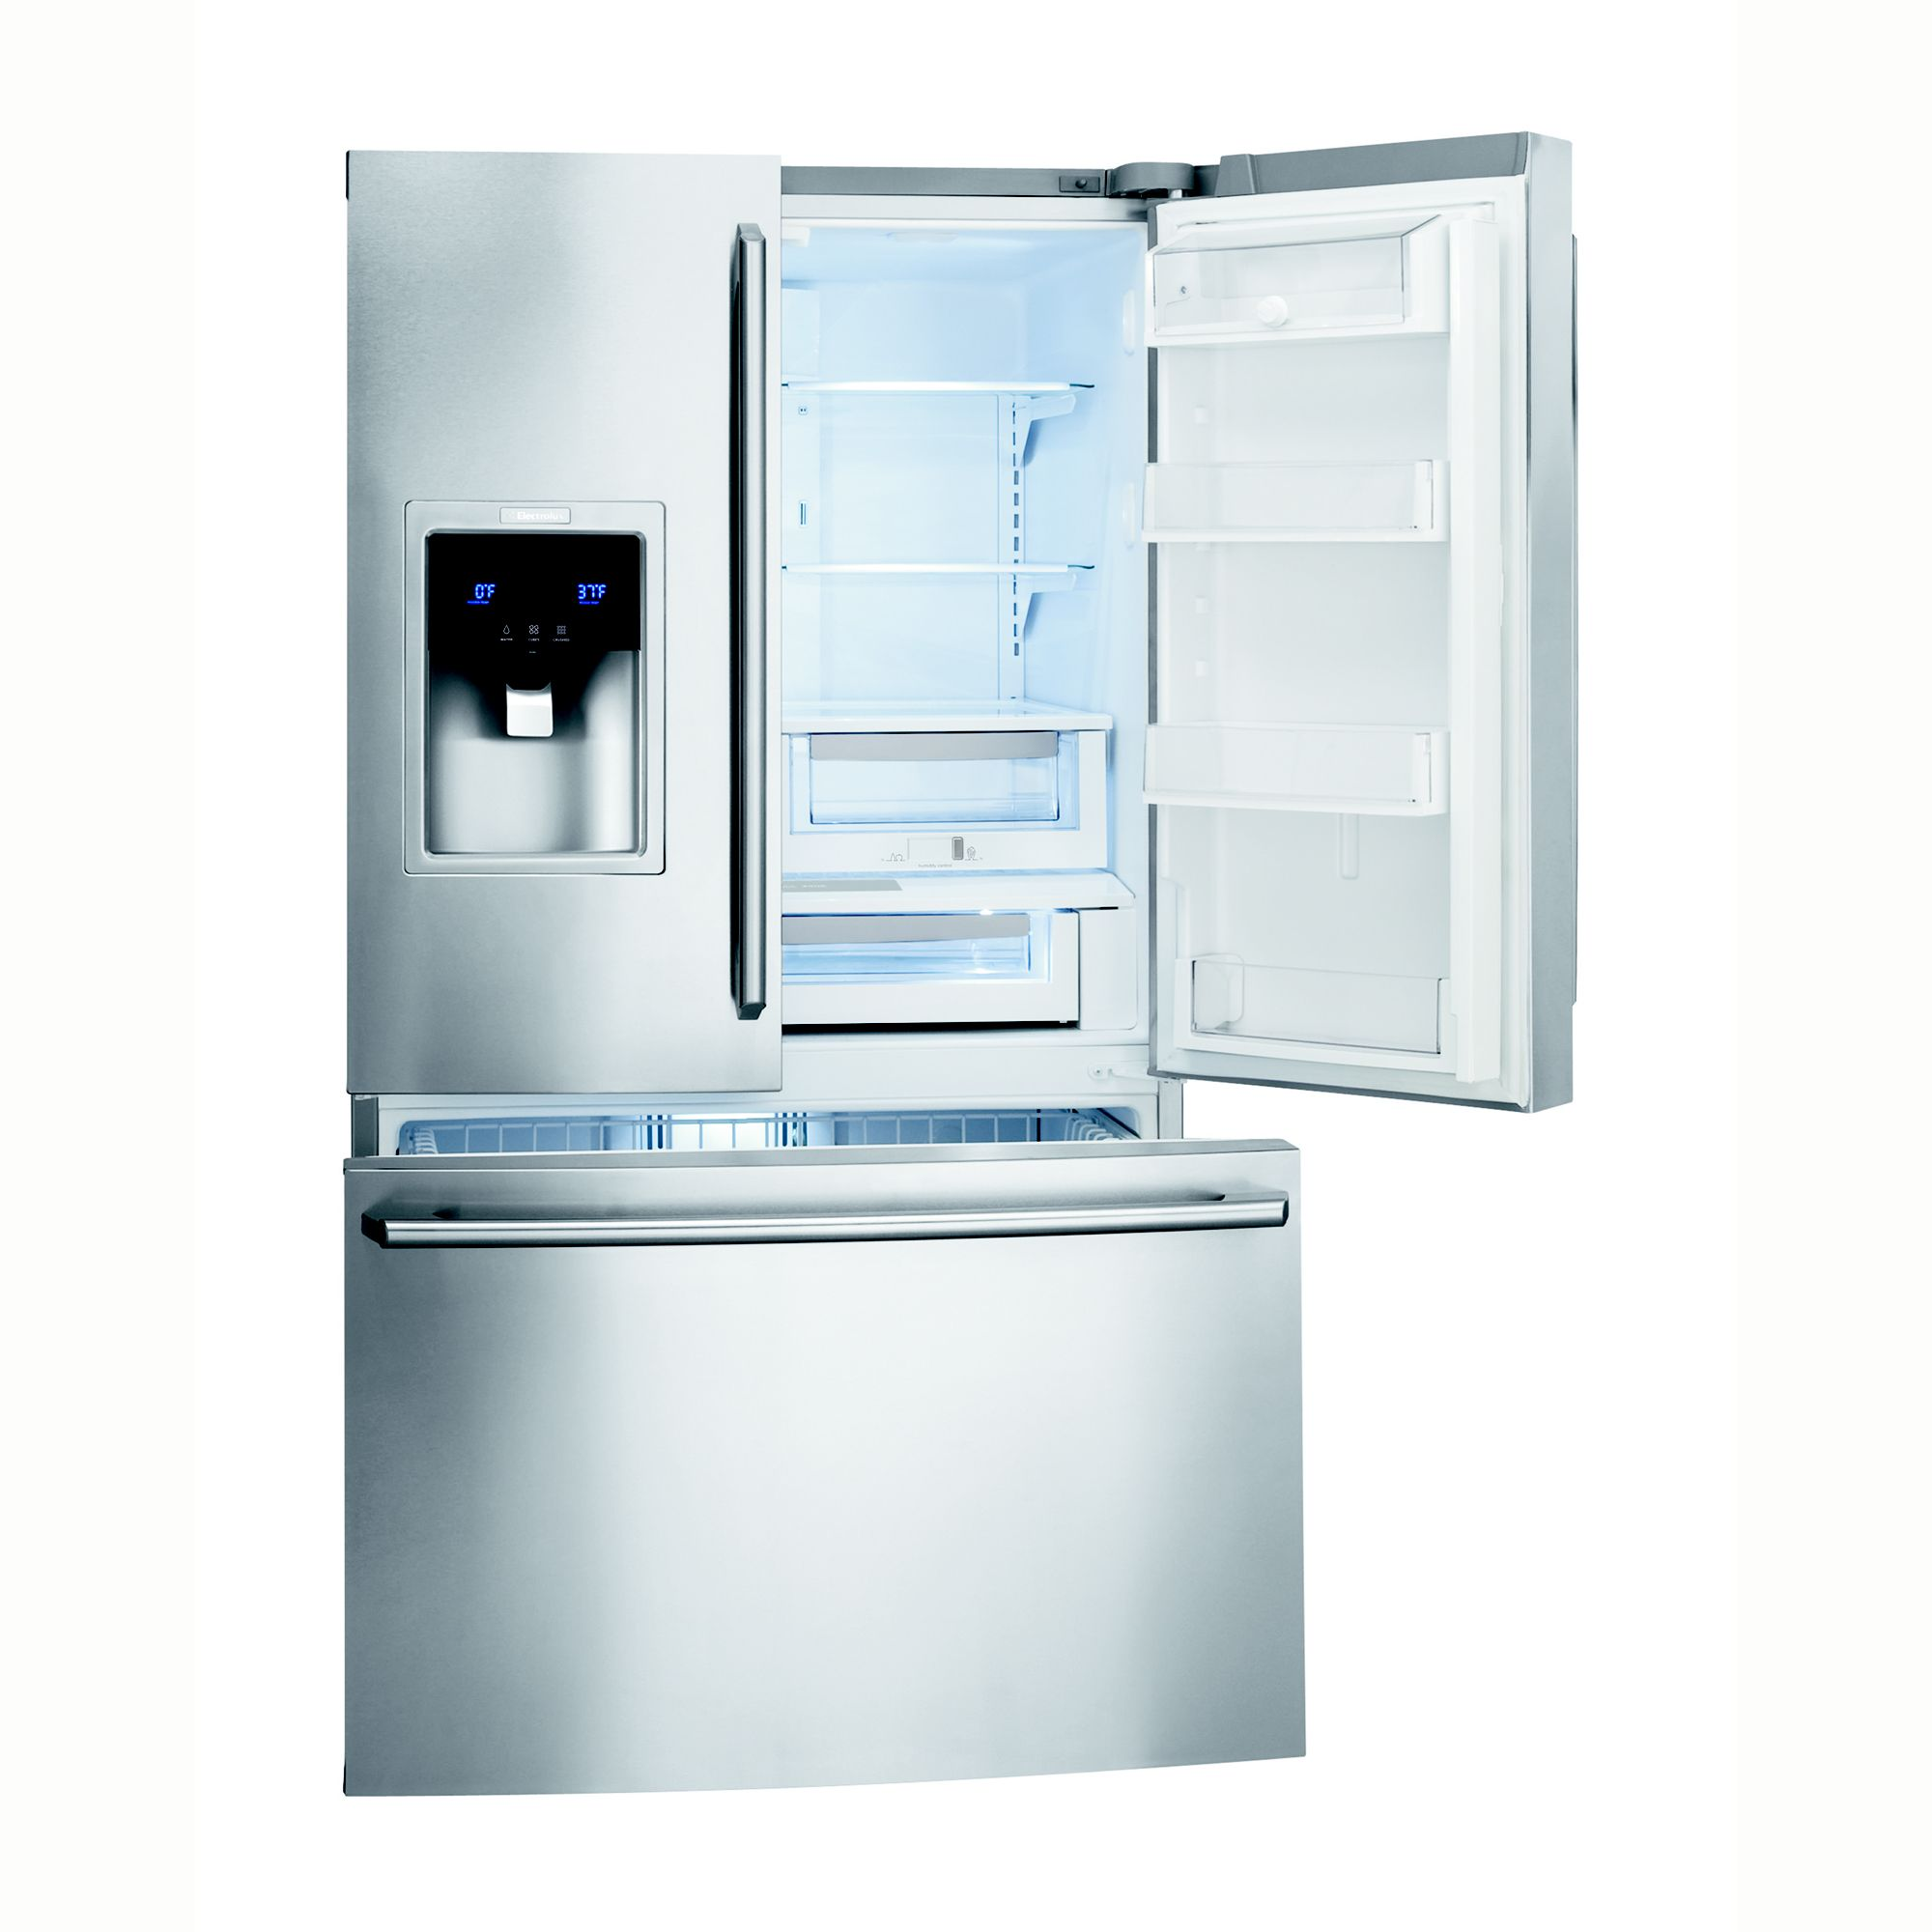 Electrolux 22.6 cu. ft. French-Door Bottom Freezer Refrigerator